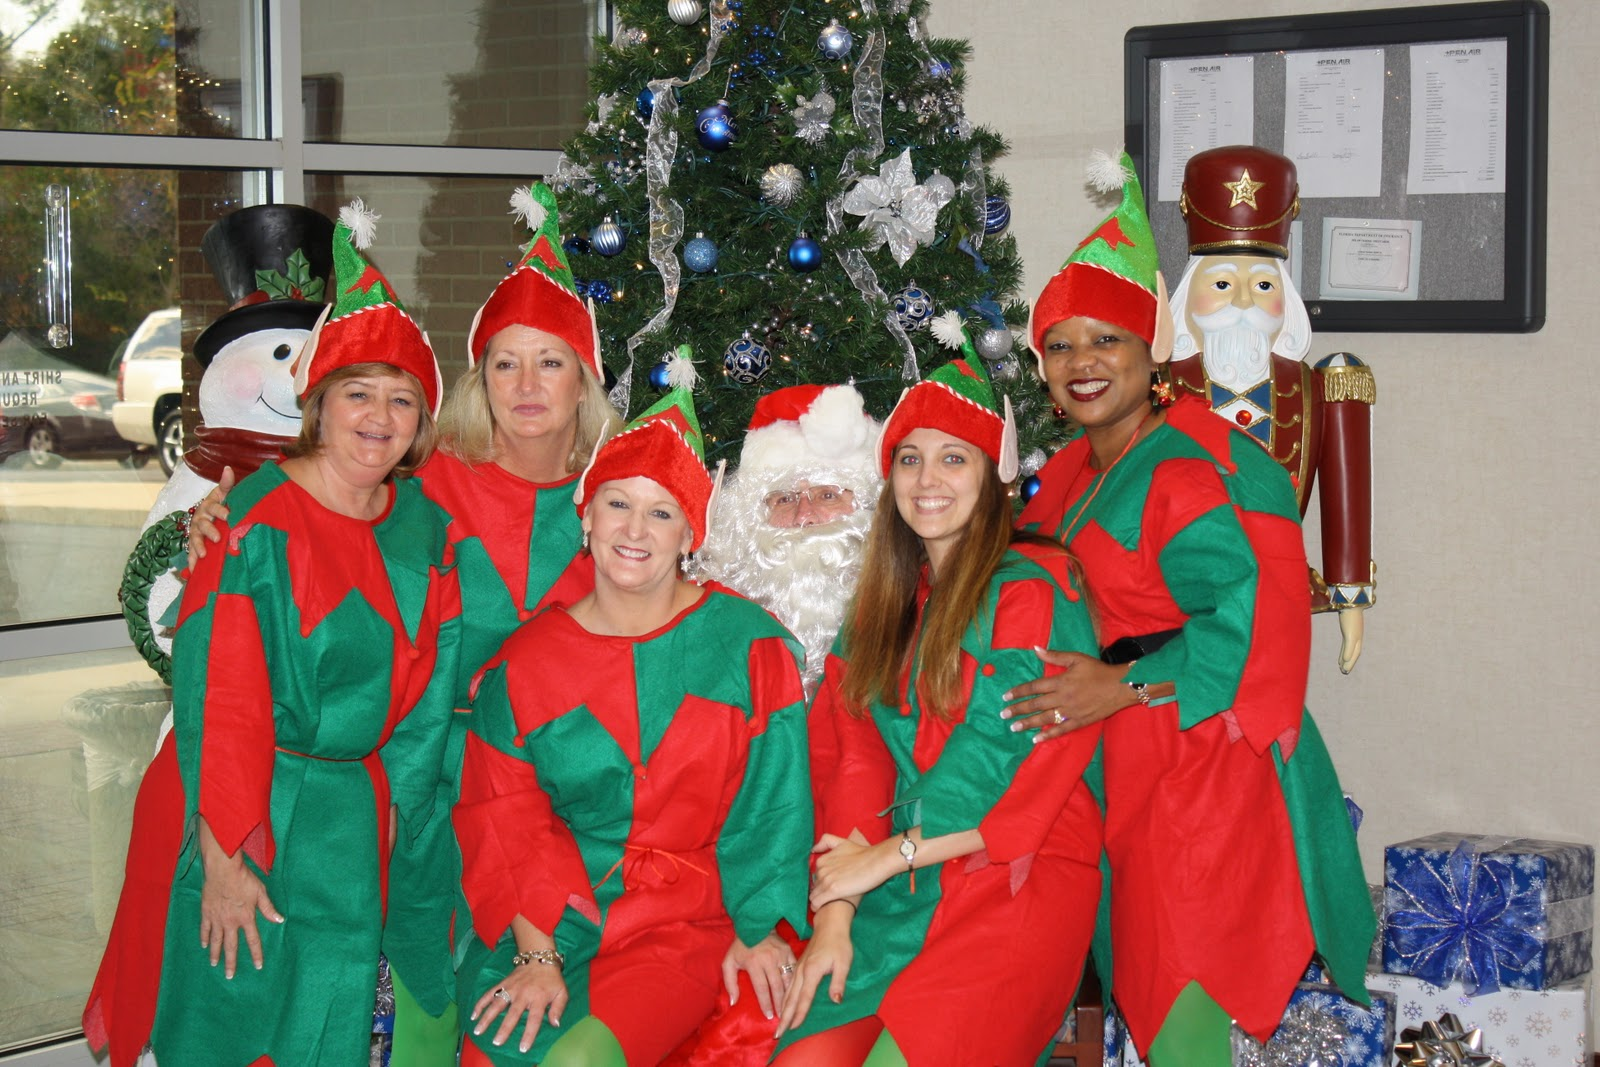 Northwest Federal Credit Union >> Pen Air Federal Credit Union: Santa and his elves visit Pen Air...